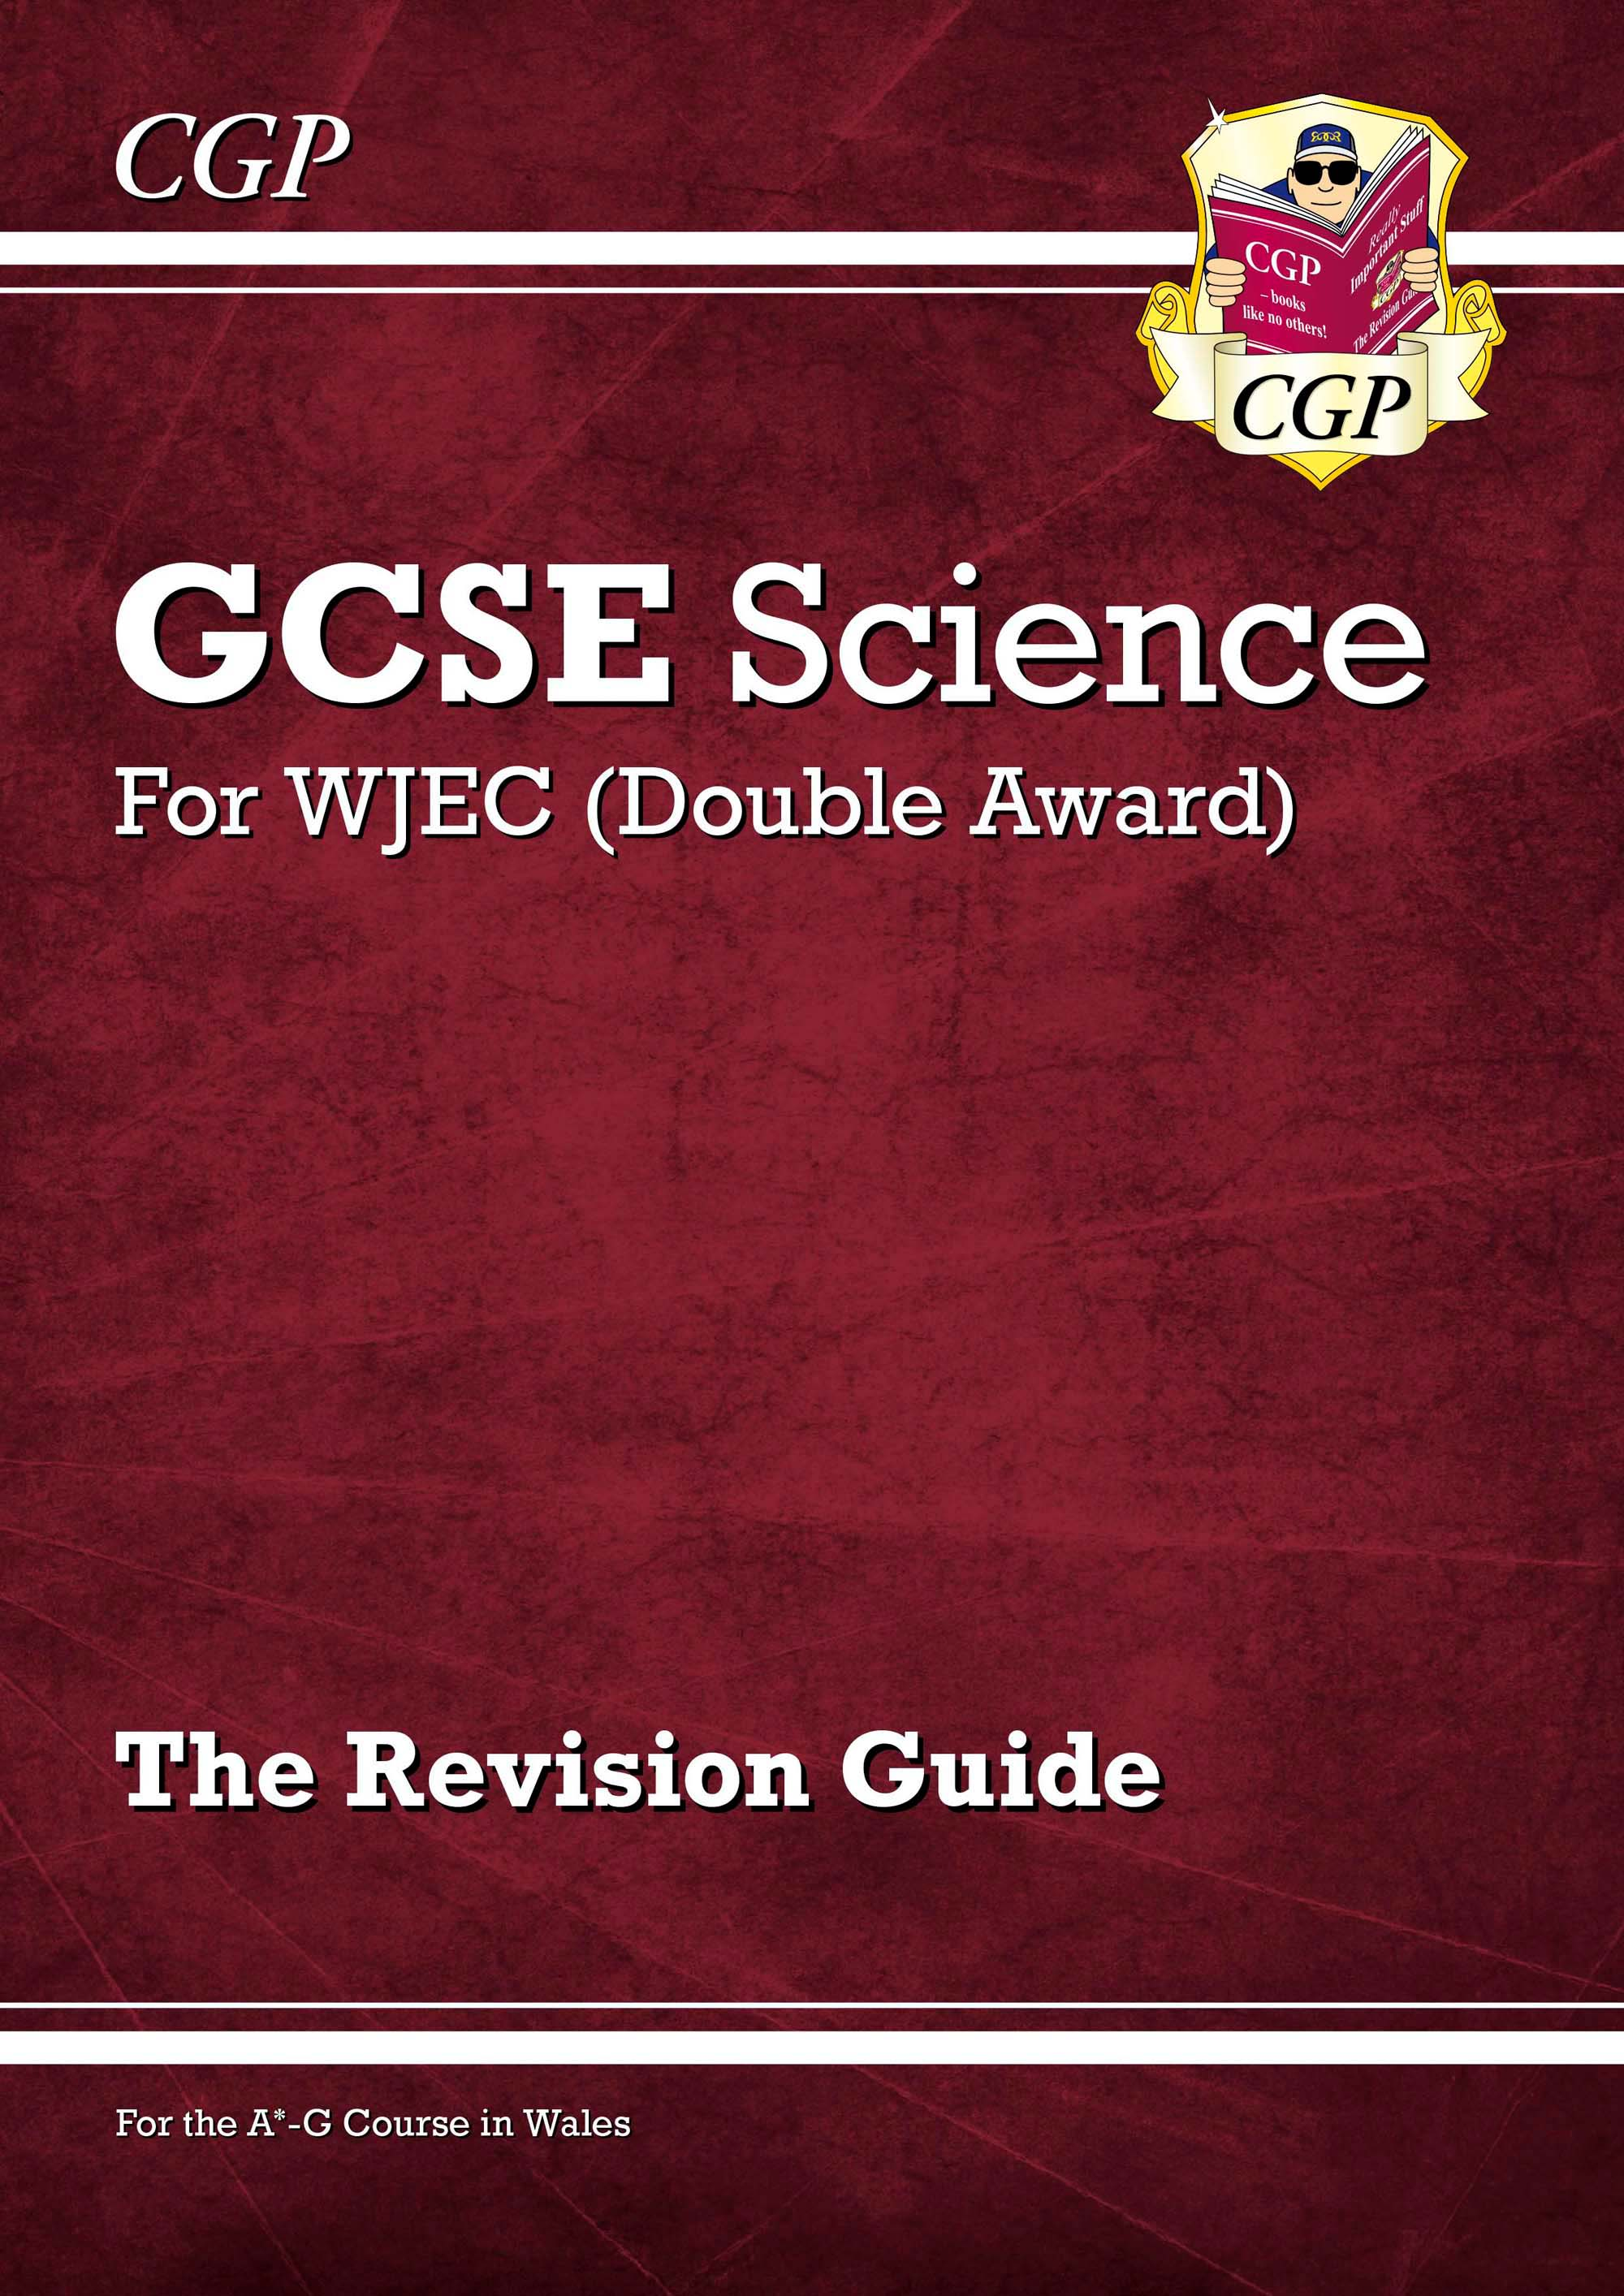 SWR41DK - New WJEC GCSE Science Double Award - Revision Guide